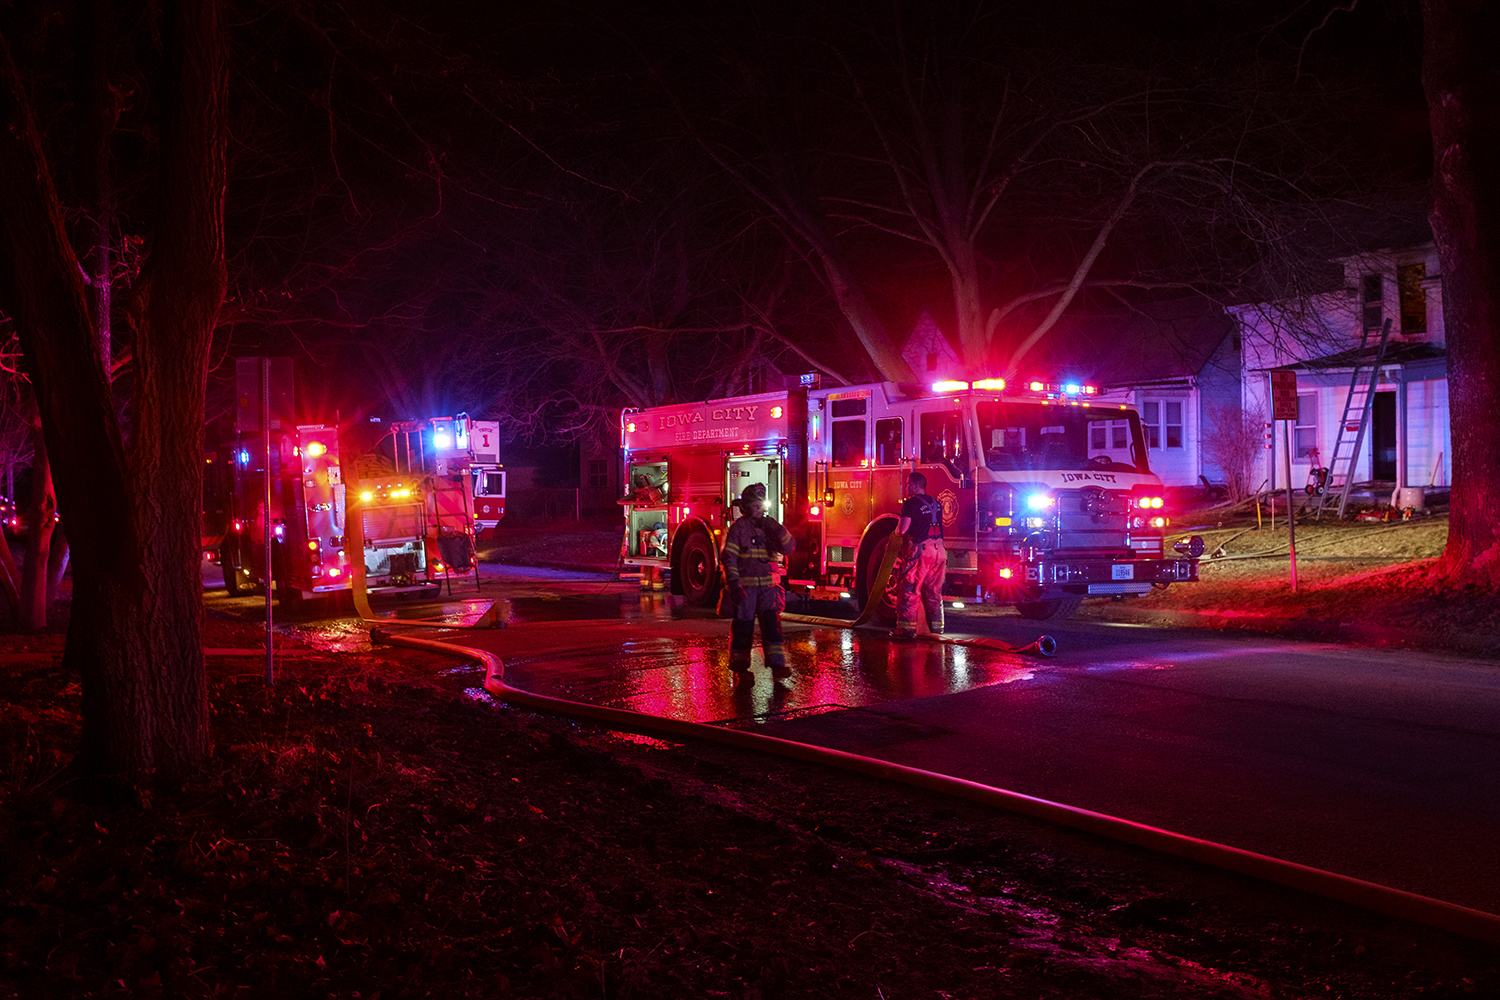 Firefighters respond to a report of a fire at a residence on Davenport Street in Iowa City on Tuesday, March 19, 2019.